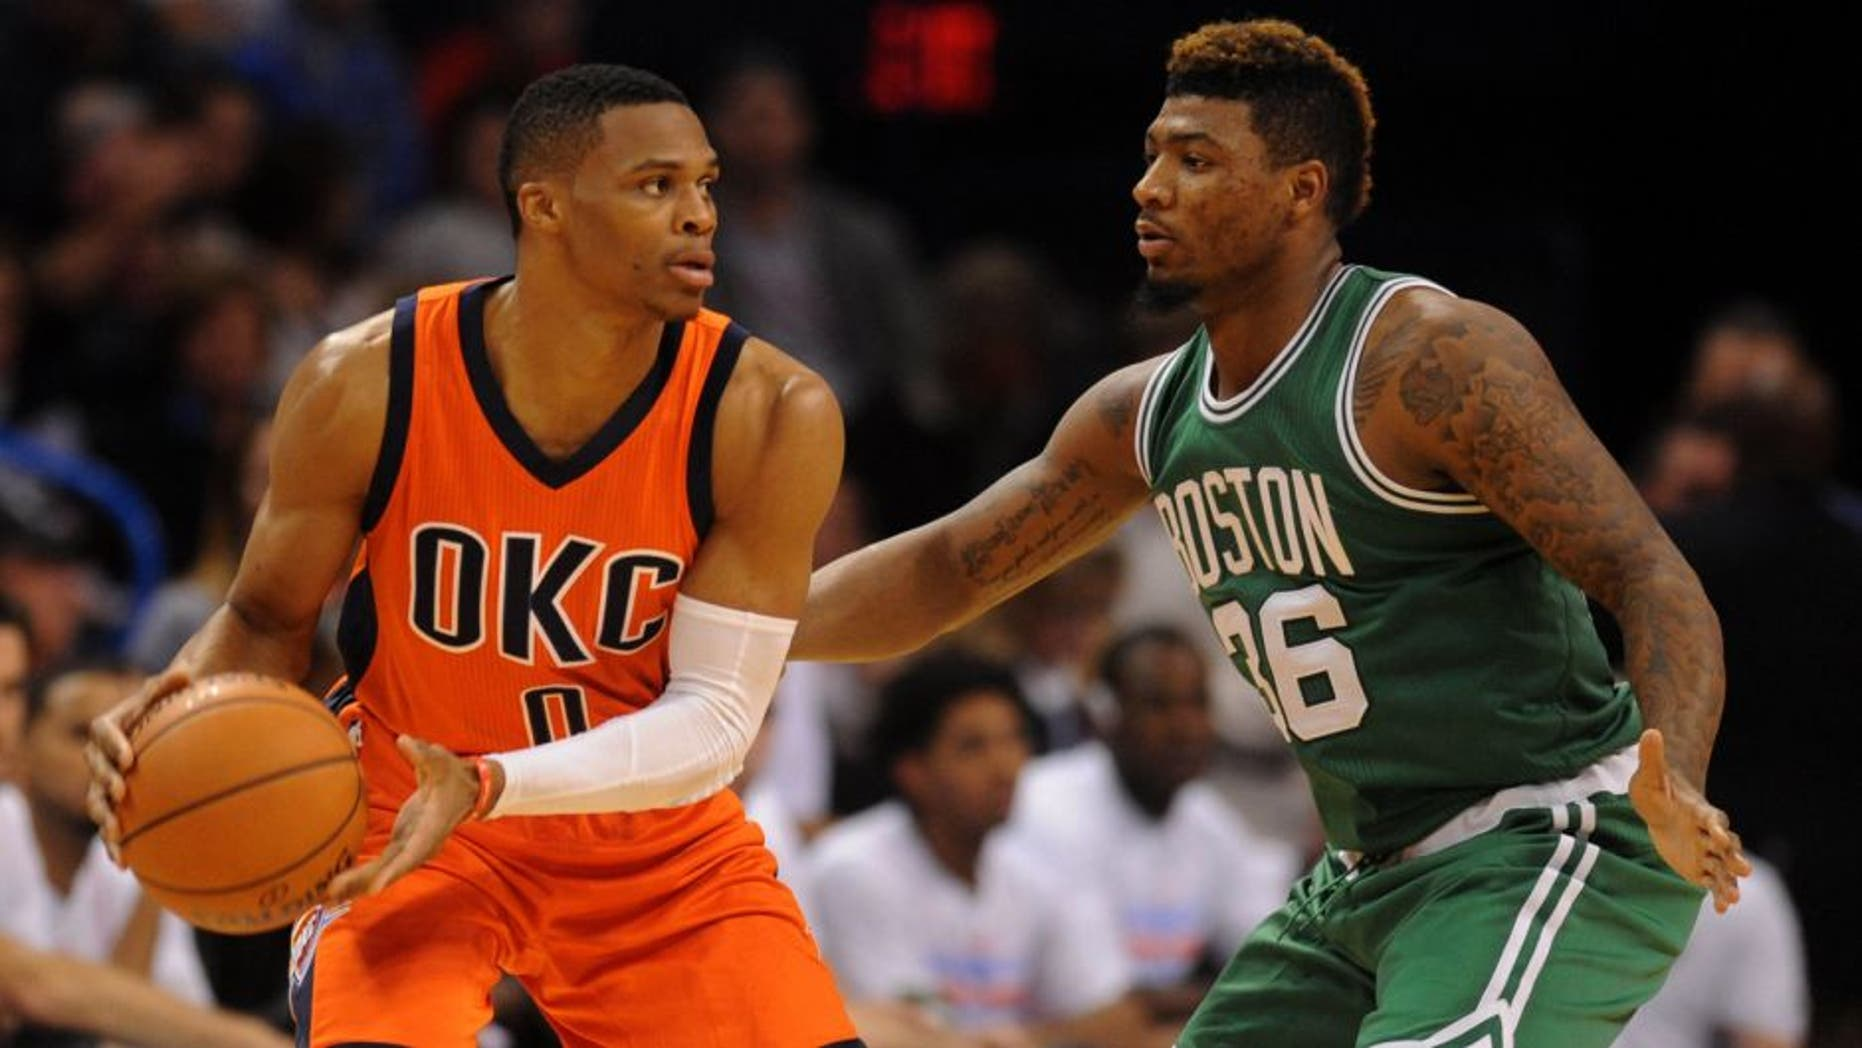 Nov 15, 2015; Oklahoma City, OK, USA; Oklahoma City Thunder guard Russell Westbrook (0) handles the ball while being guarded by Boston Celtics guard Marcus Smart (36) during the third quarter at Chesapeake Energy Arena. Mandatory Credit: Mark D. Smith-USA TODAY Sports